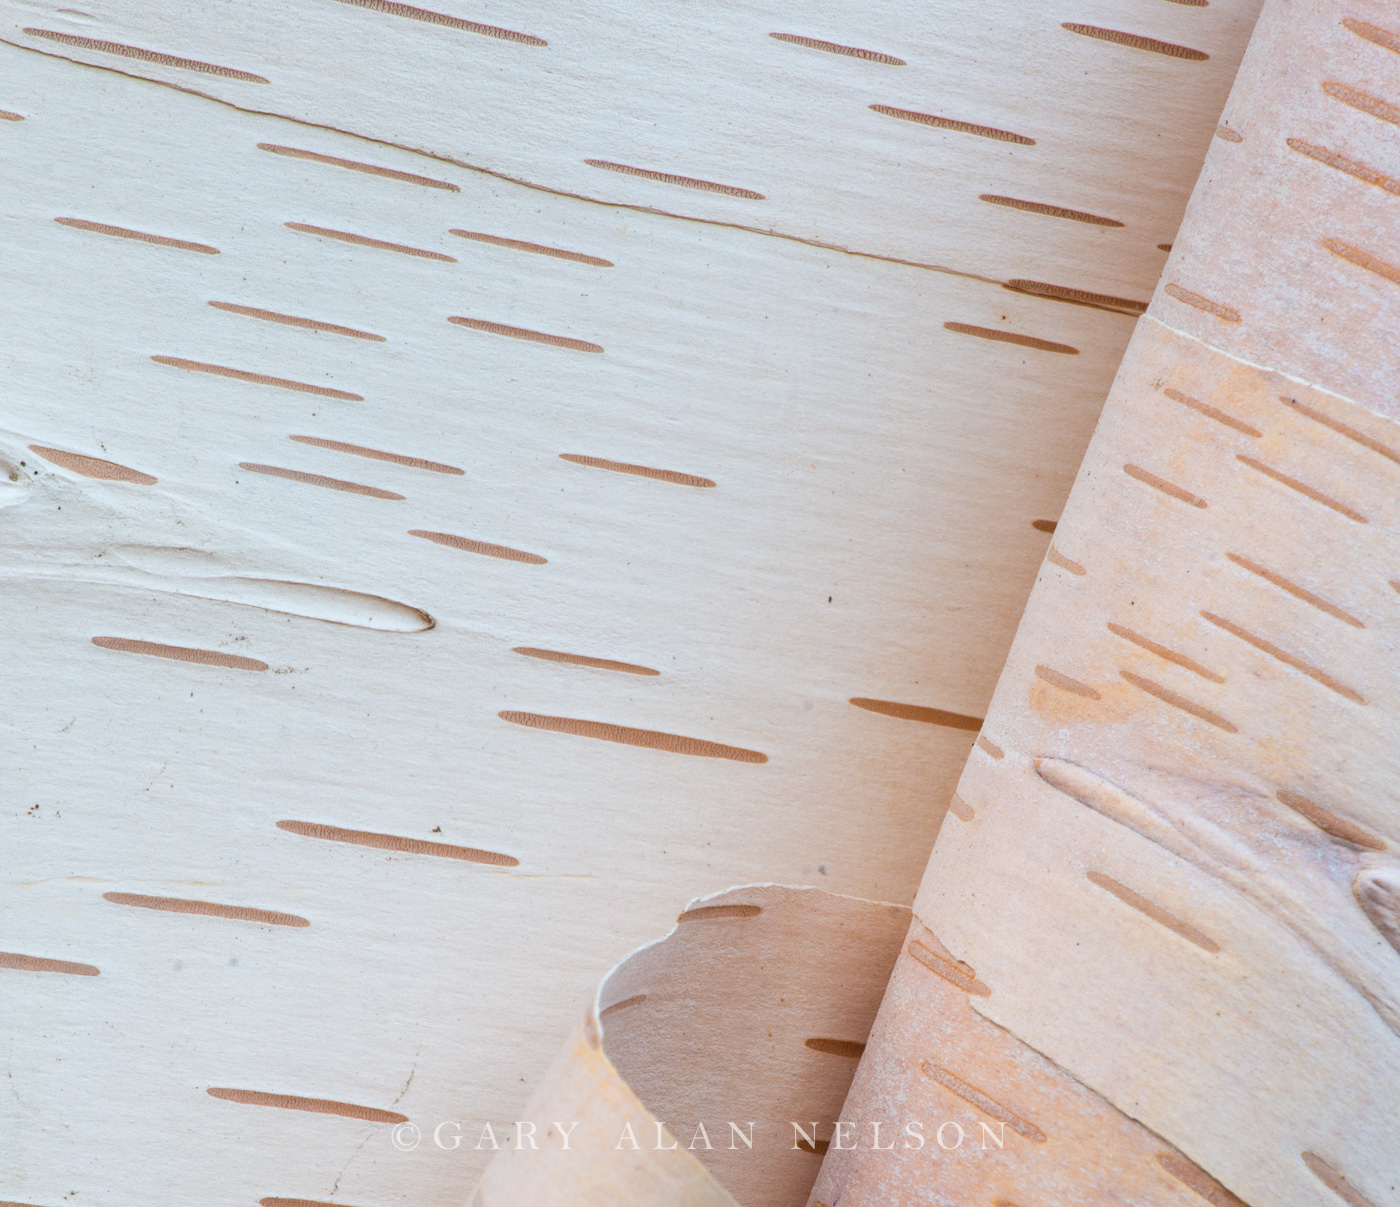 Carlos Avery,birch,birch bark,minnesota,wildlife management area, photo